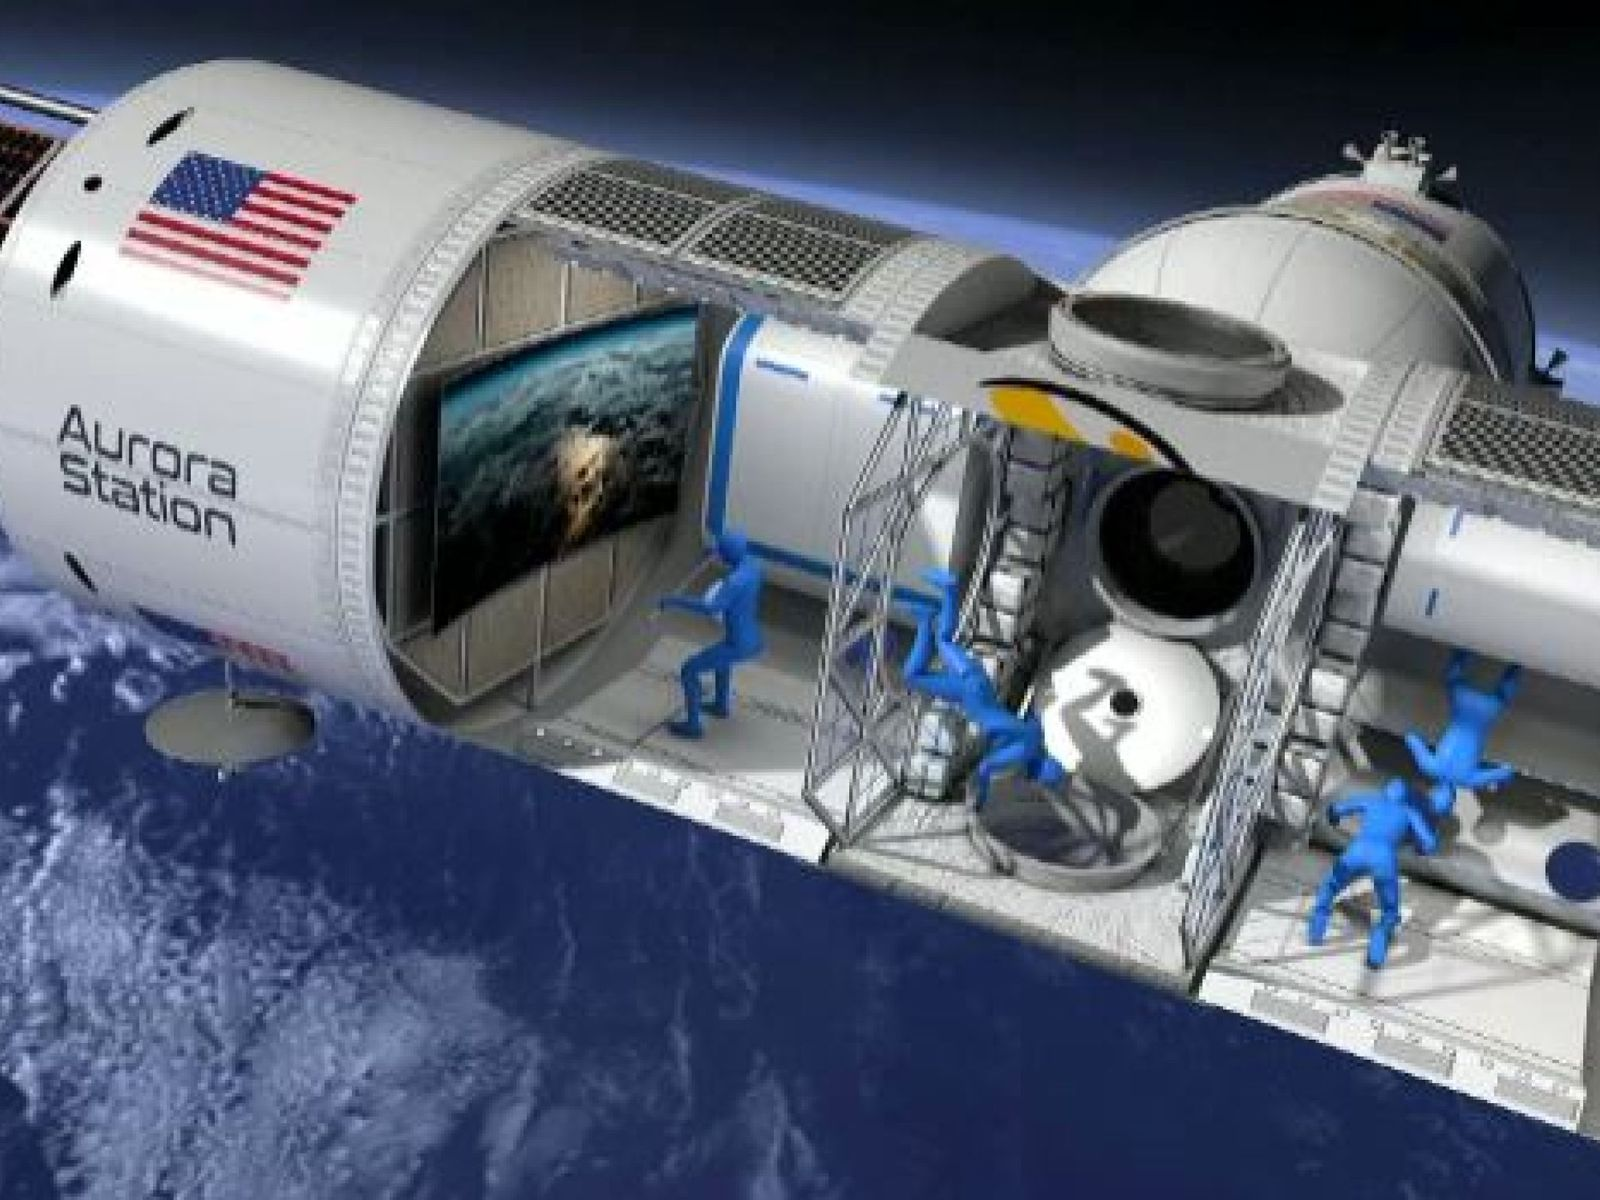 Aurora Station announce first-ever luxury hotel in space